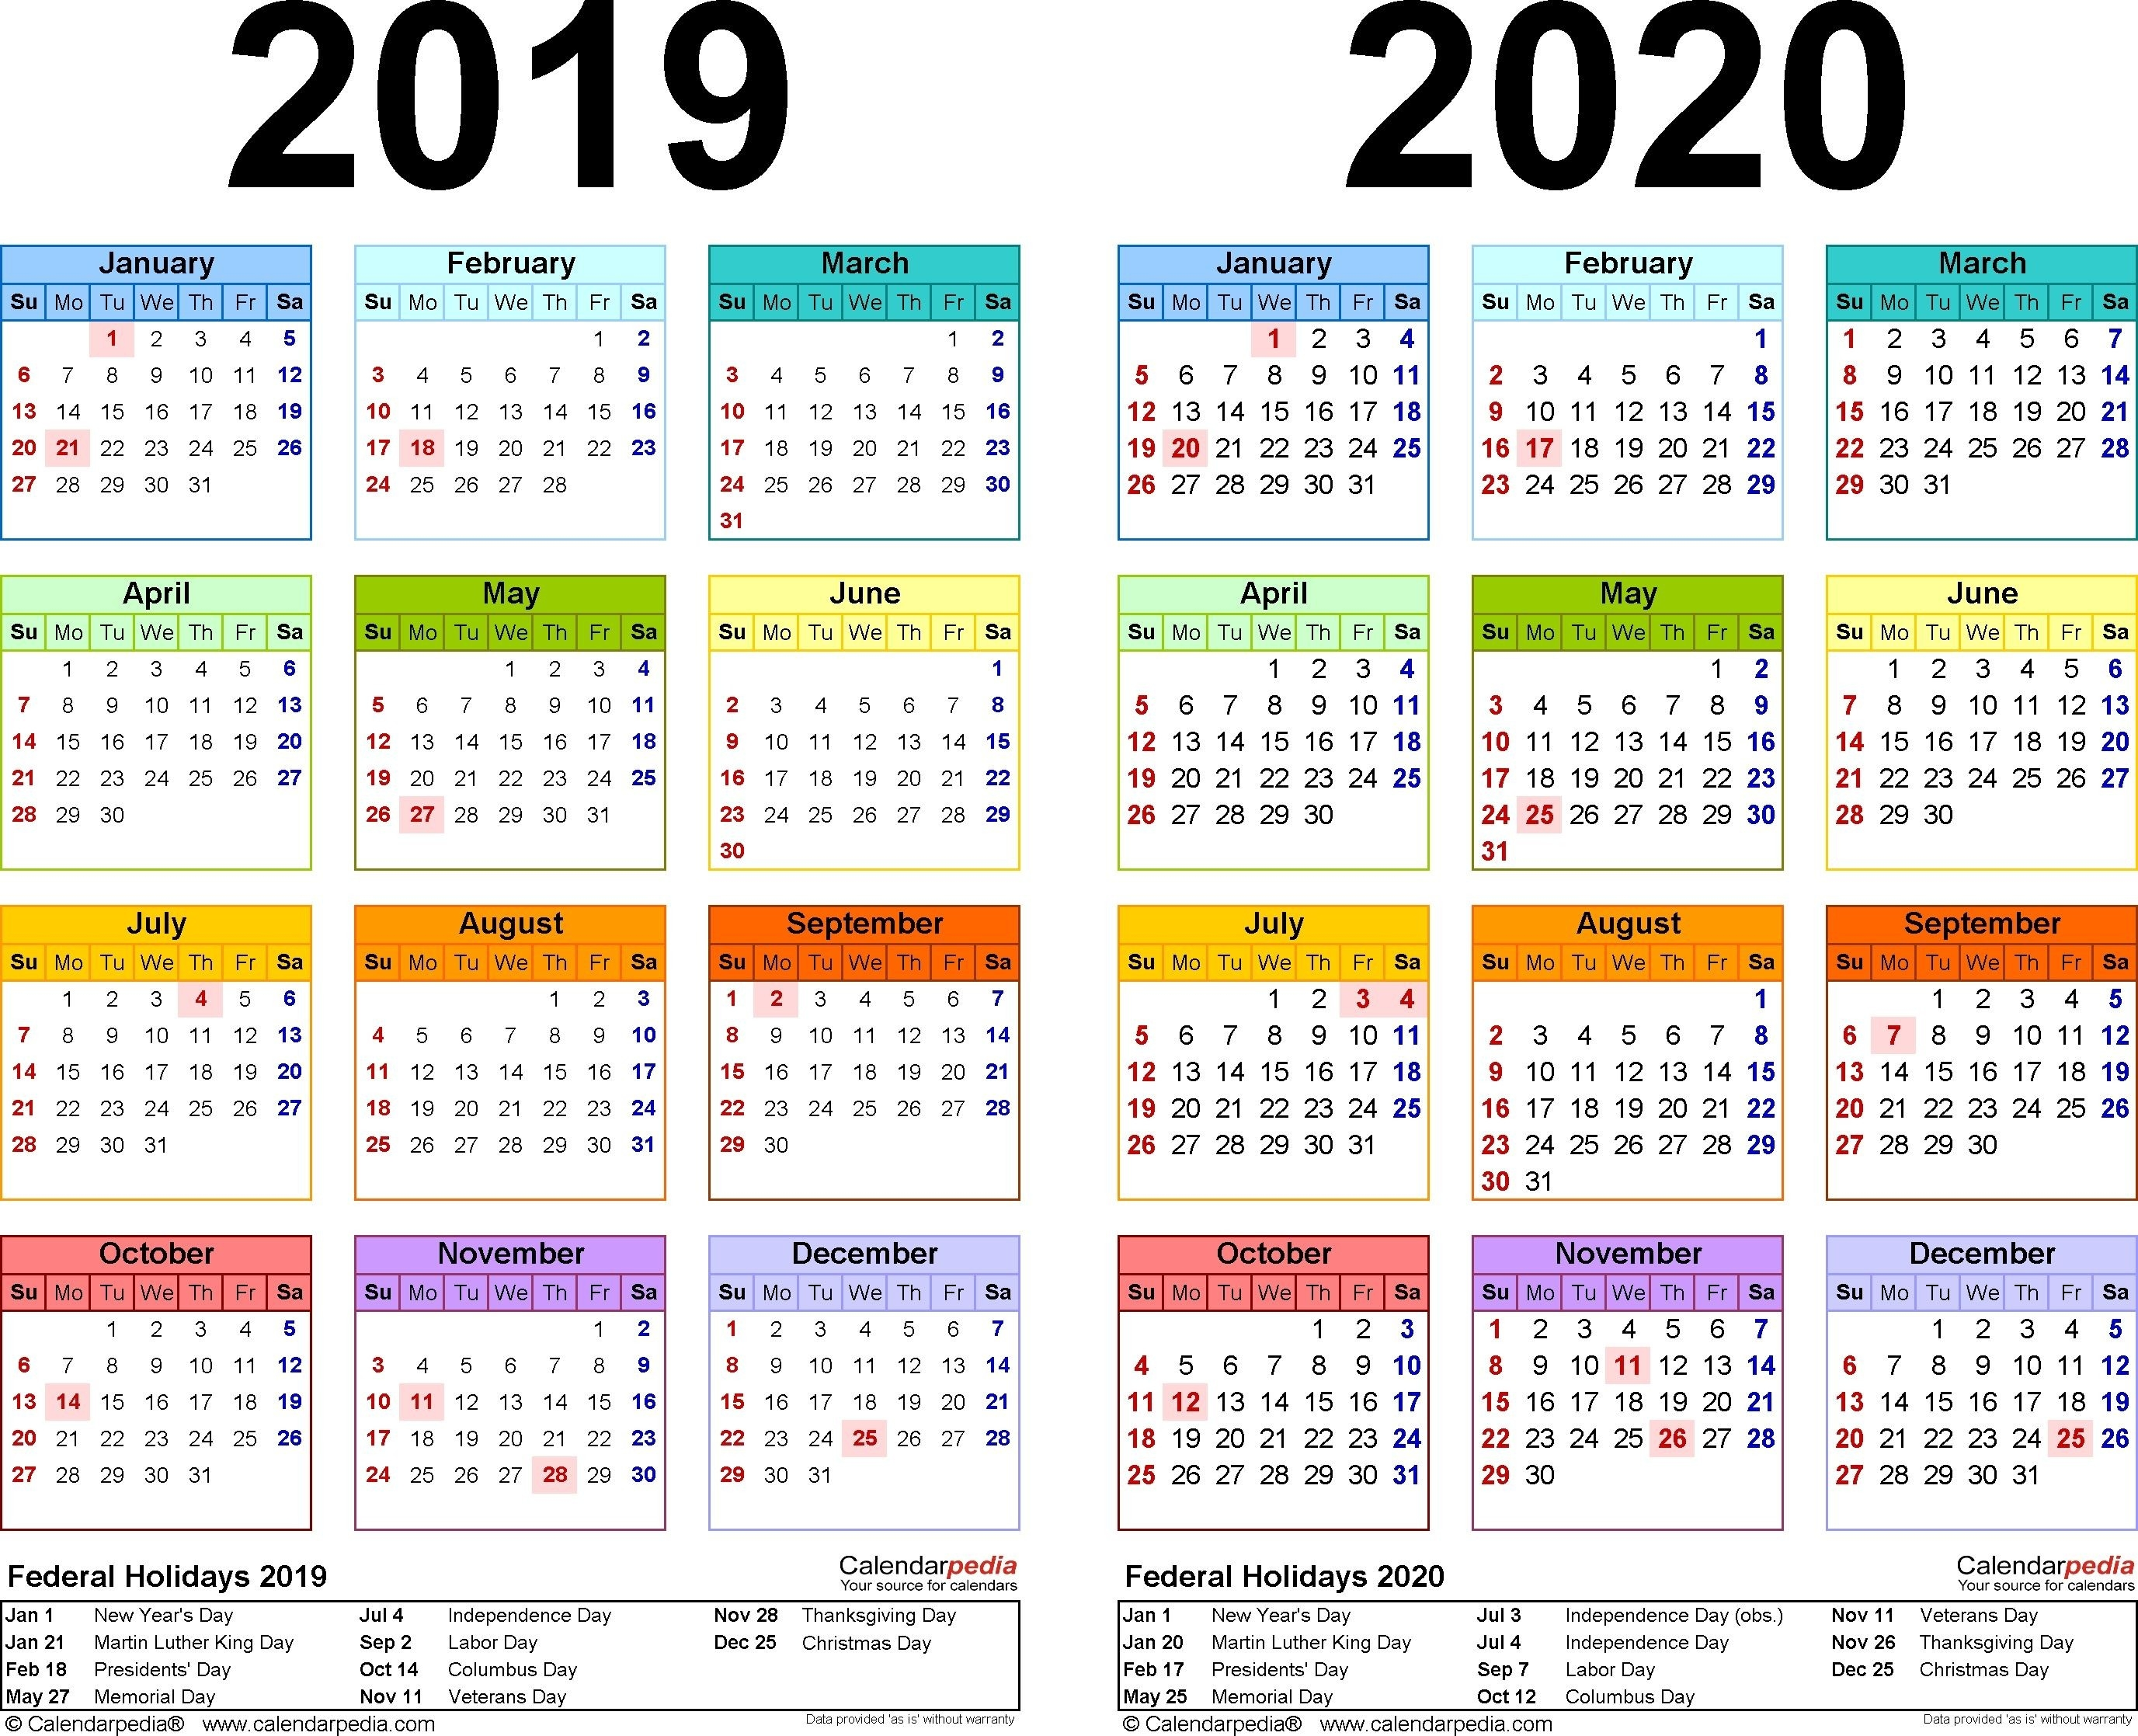 2019-2020 Calendar - Free Printable Two-Year Excel Calendars-4 Month Excel Calendar 2020 Template